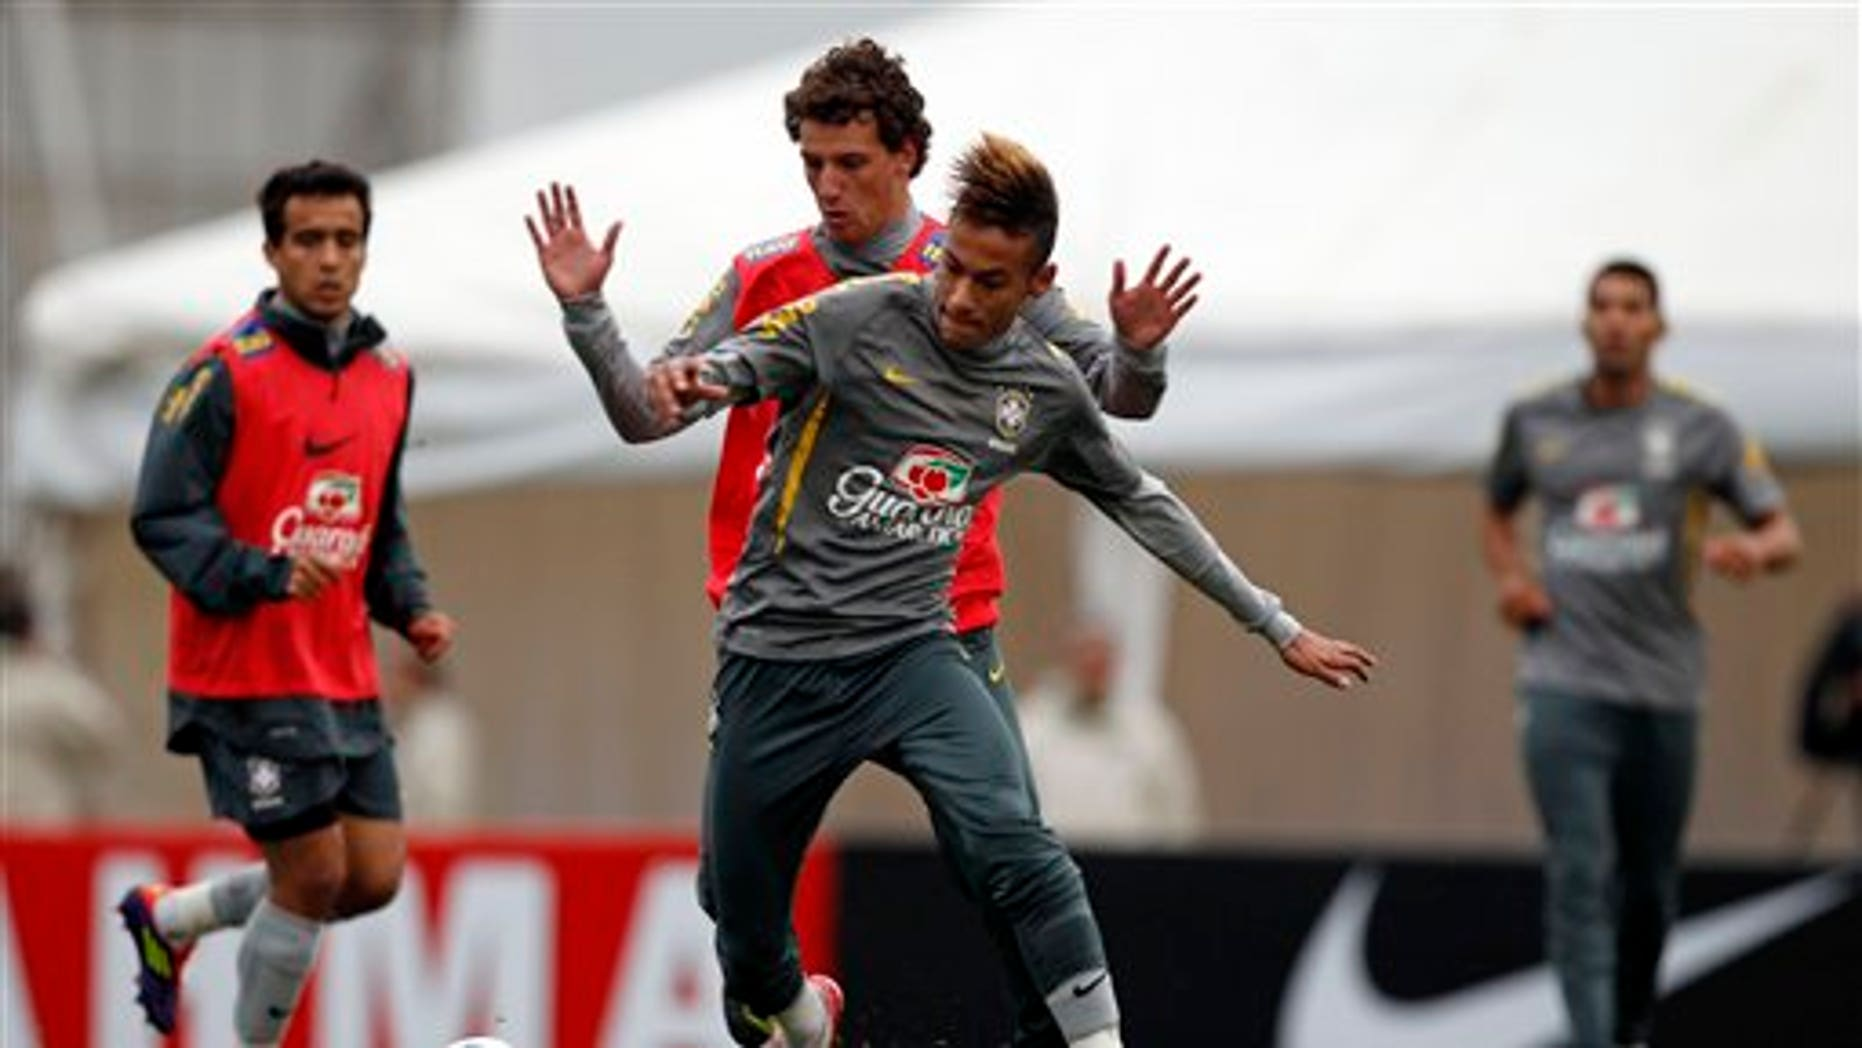 July 15: Brazil's Elano and Neymar, fight for the ball during a training session near Campana, Argentina.